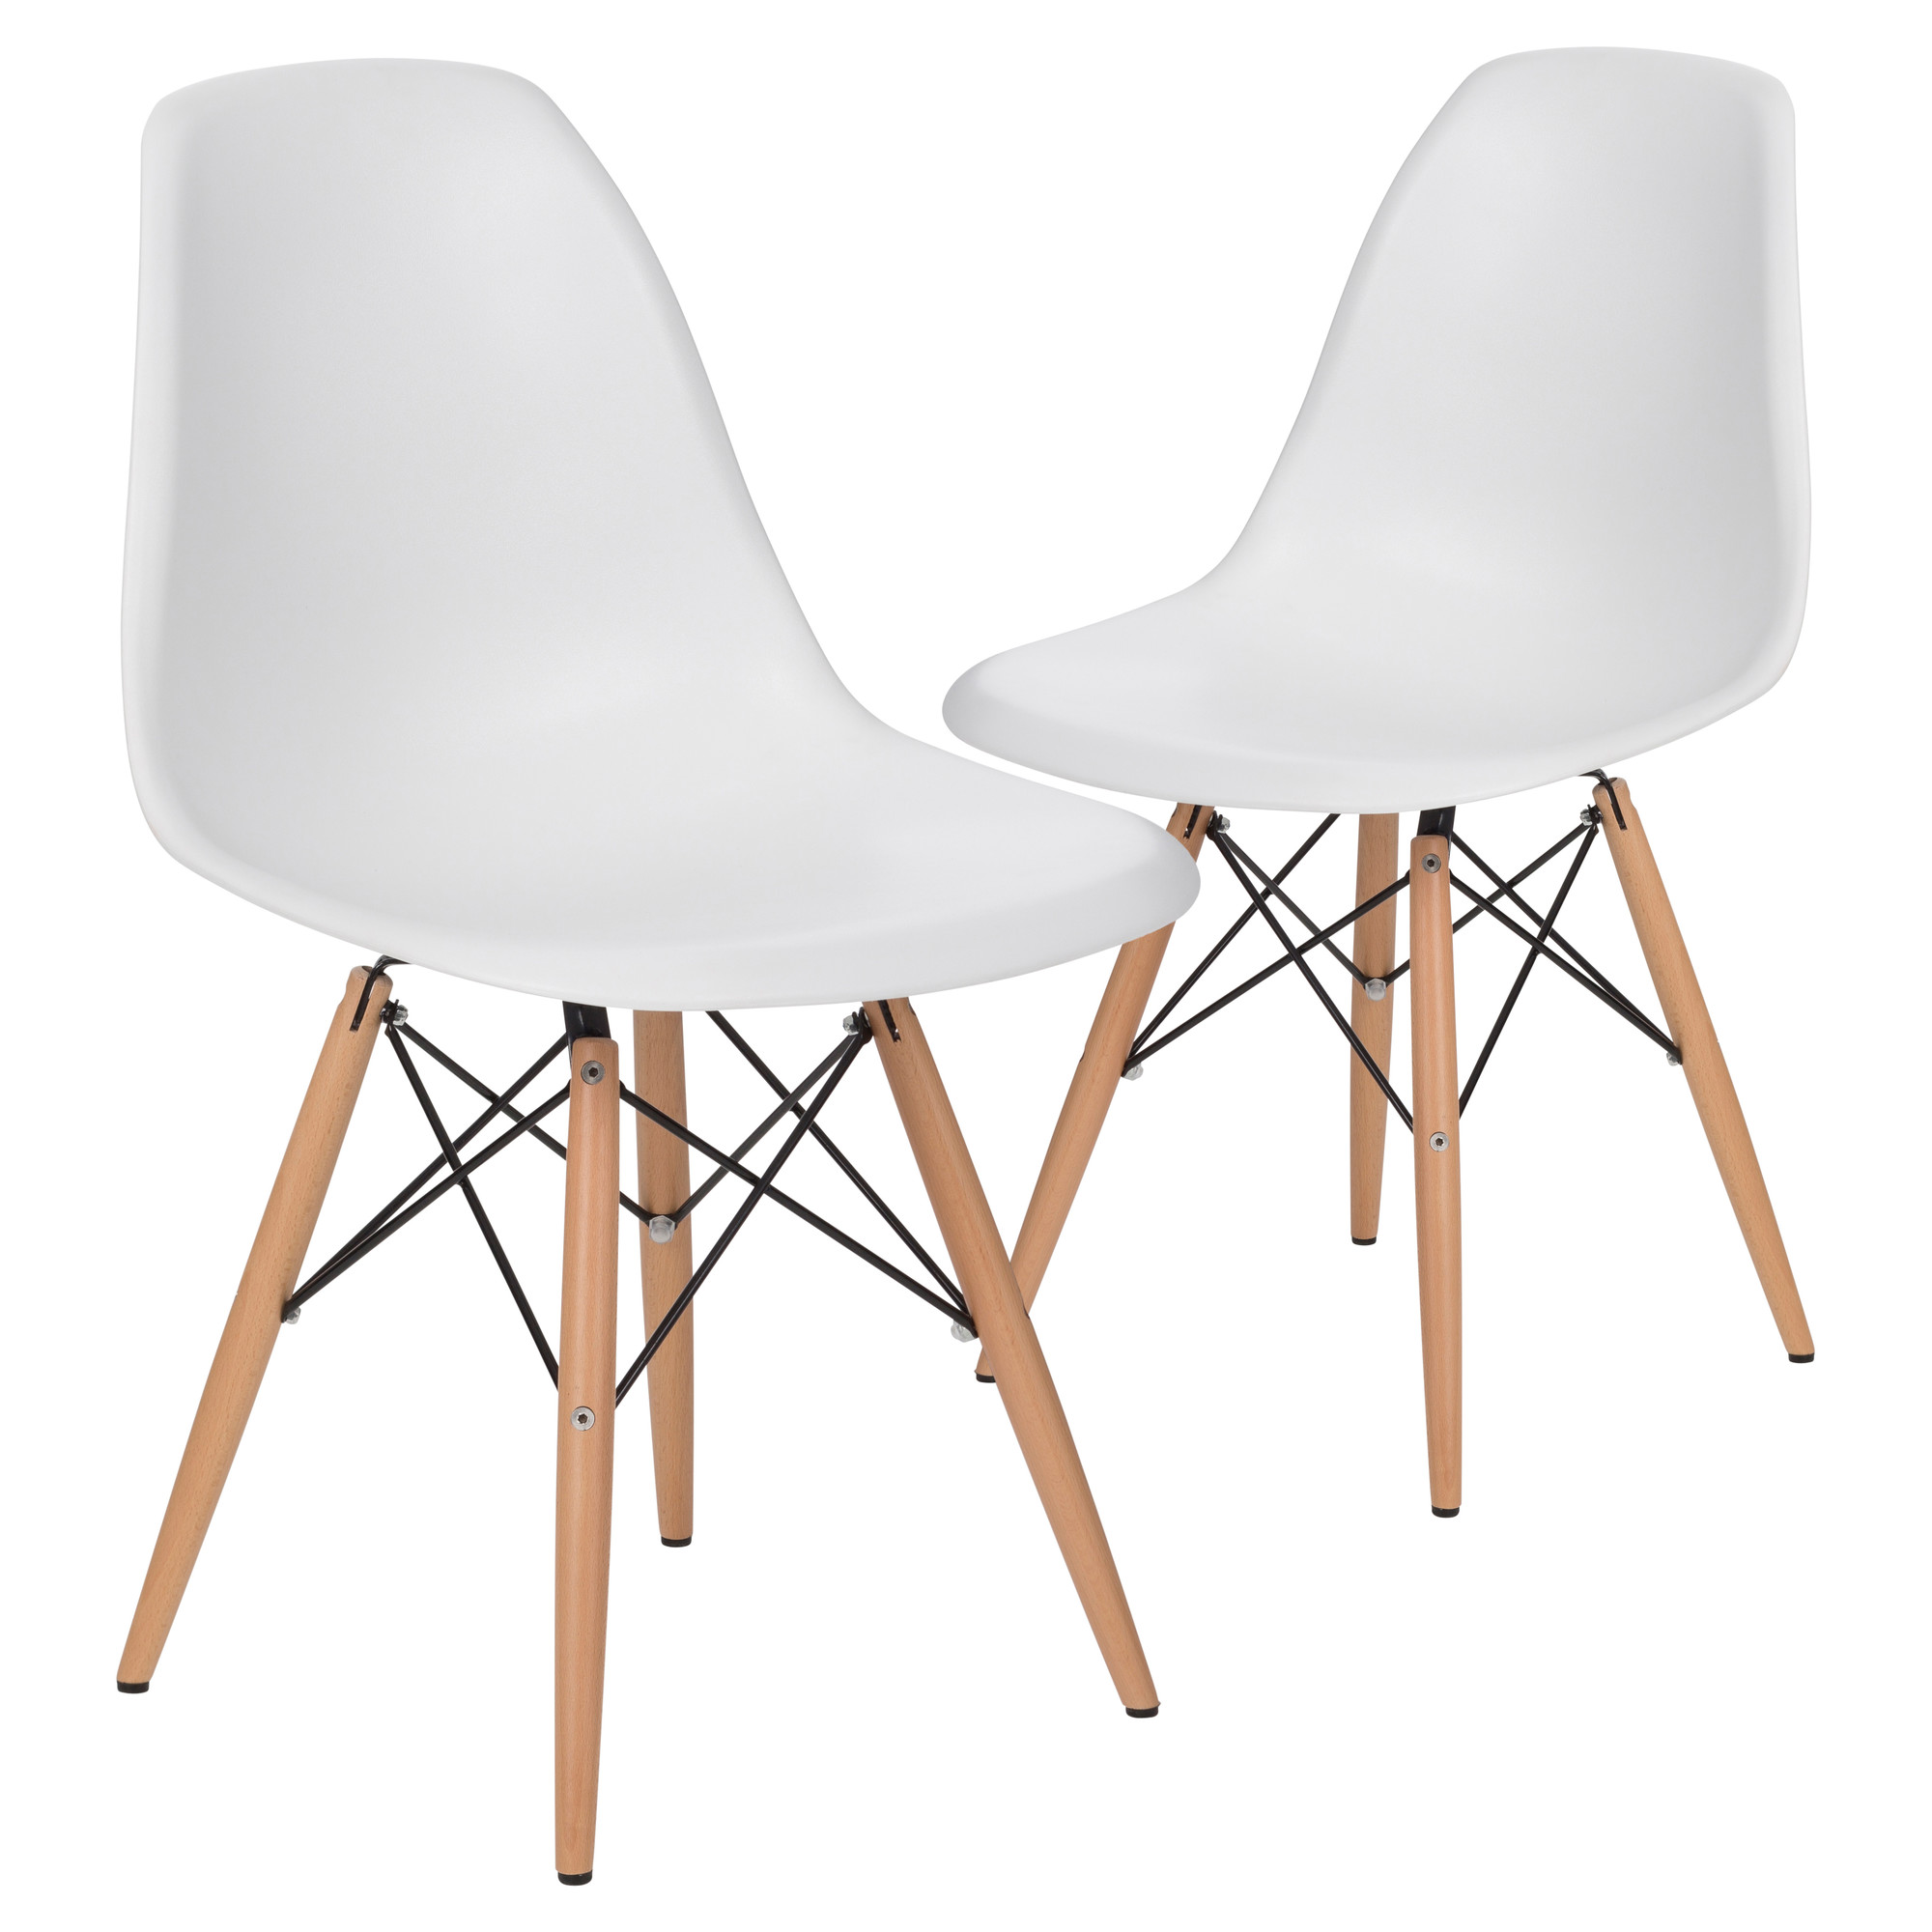 New eames replica dsw dining side chair ebay for Eames dsw replica